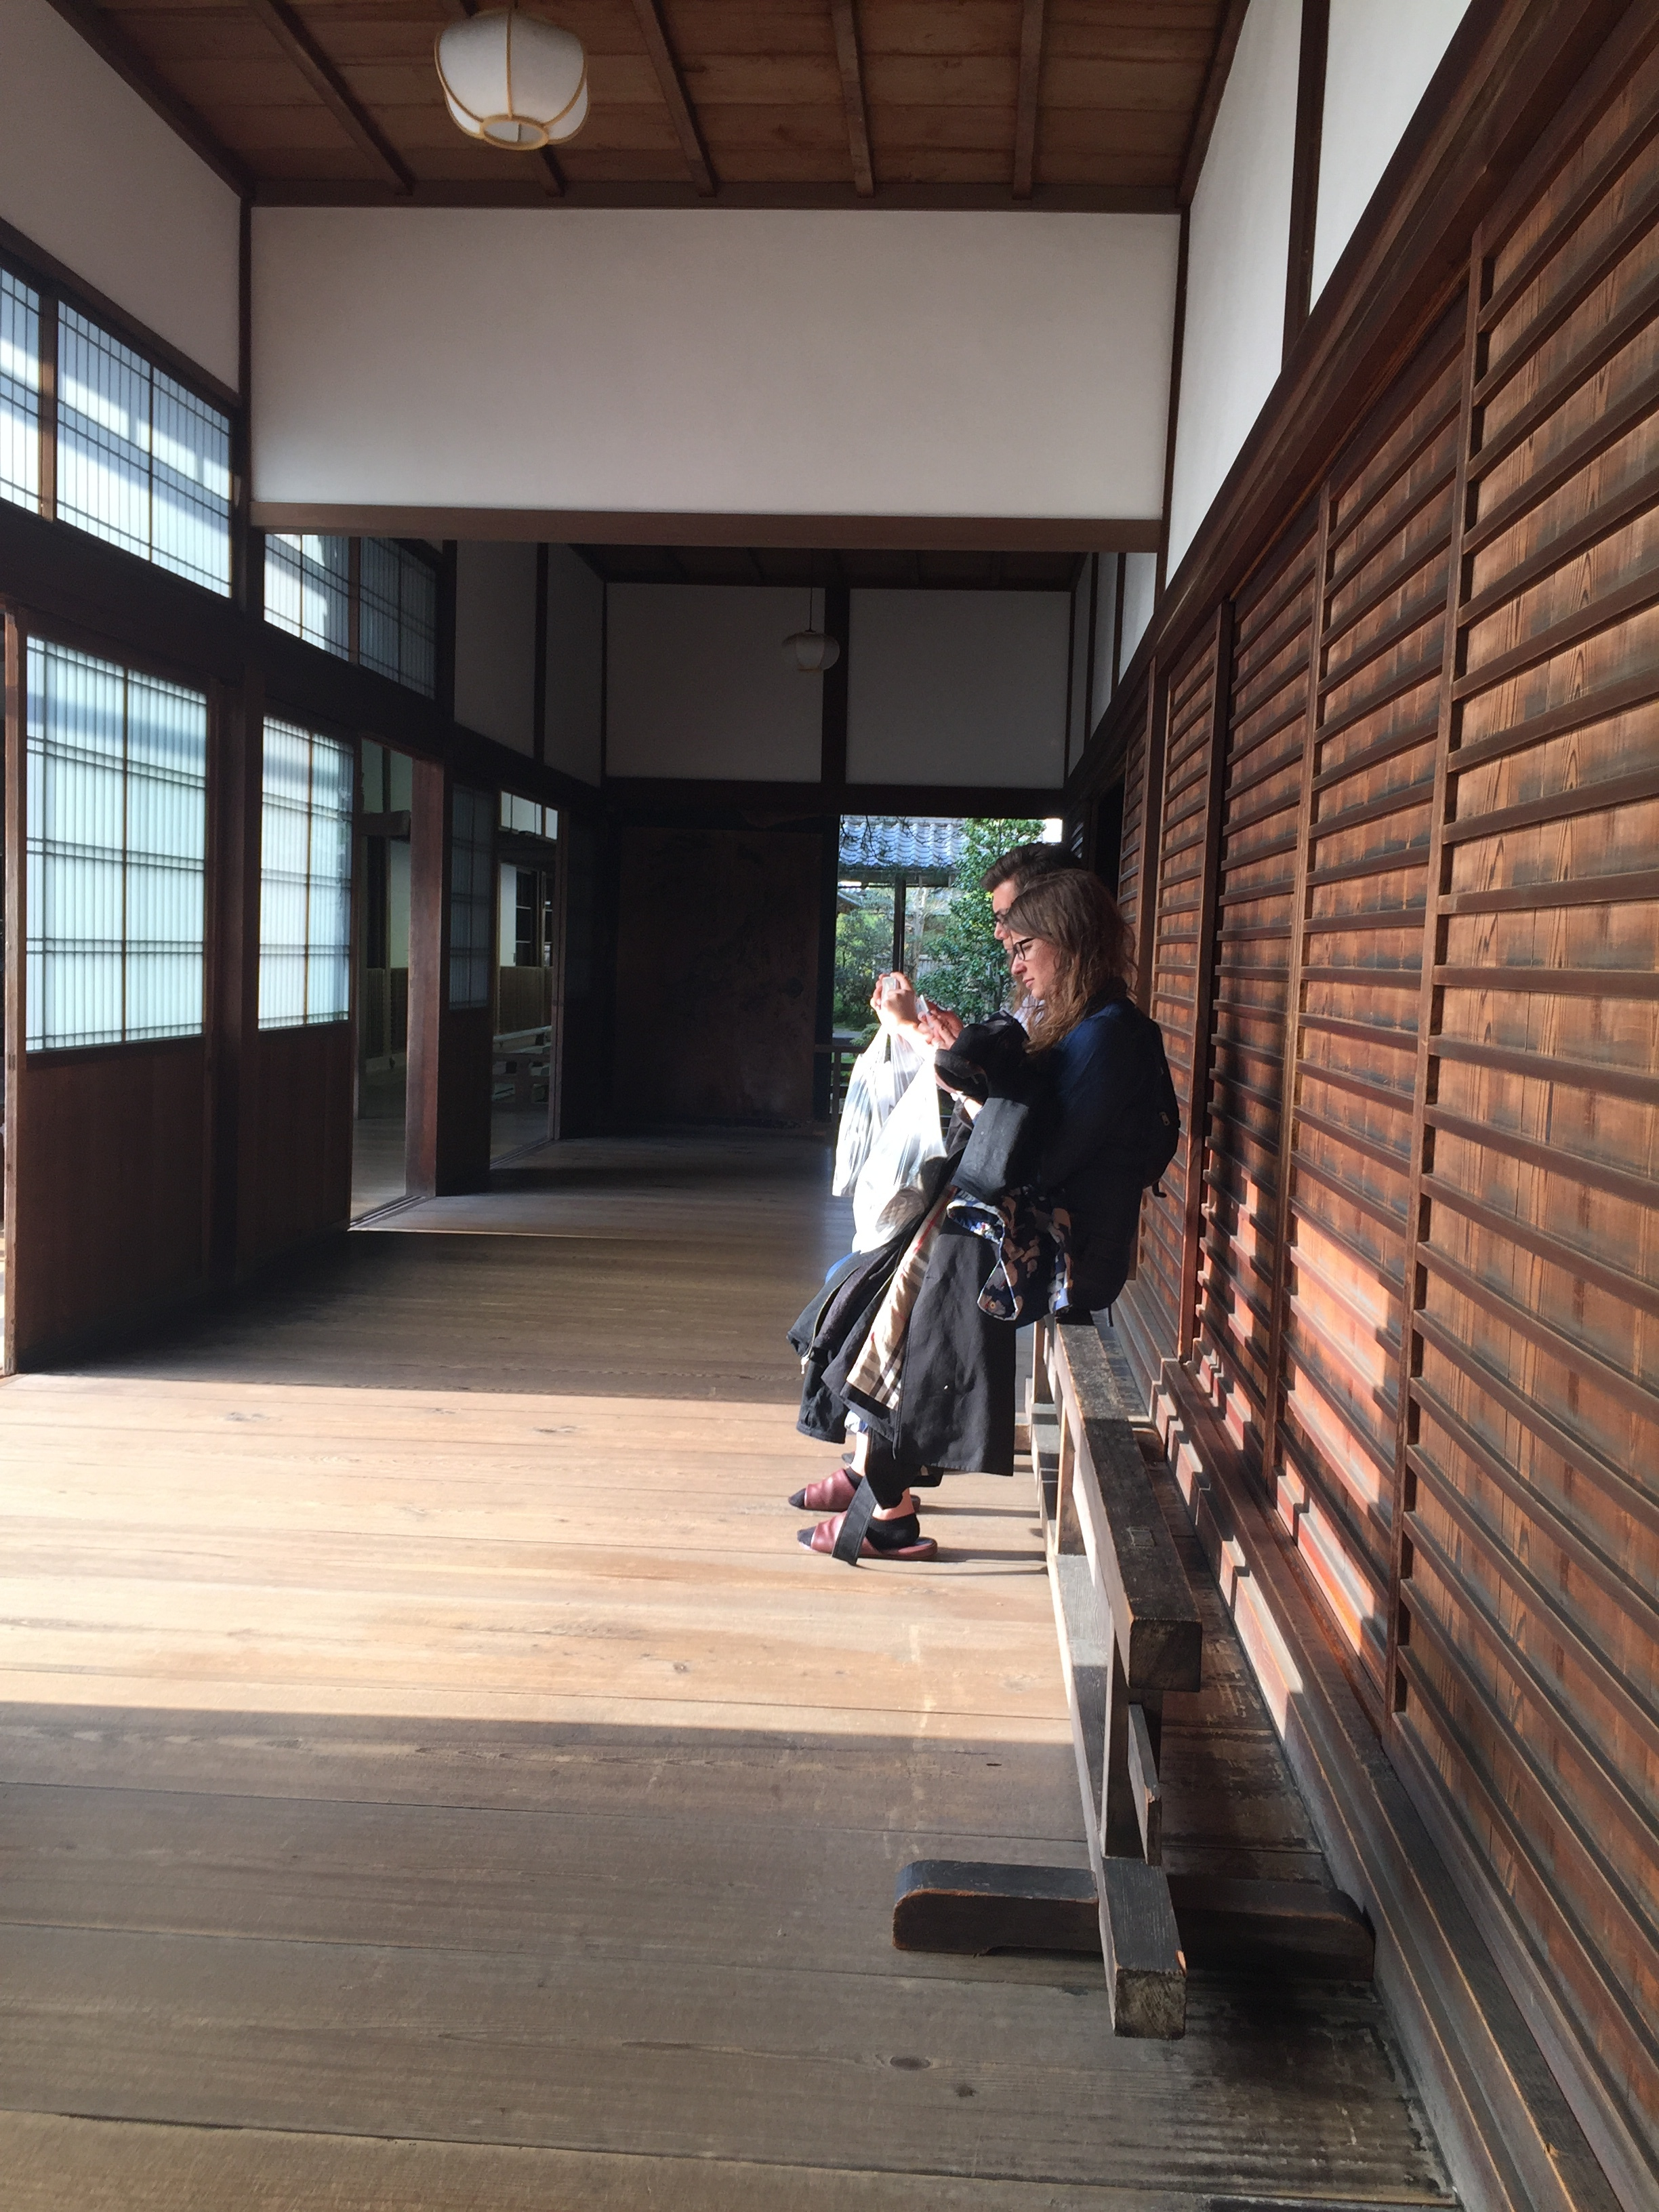 next day ... time for some zen gardens, shrines, and more shrines